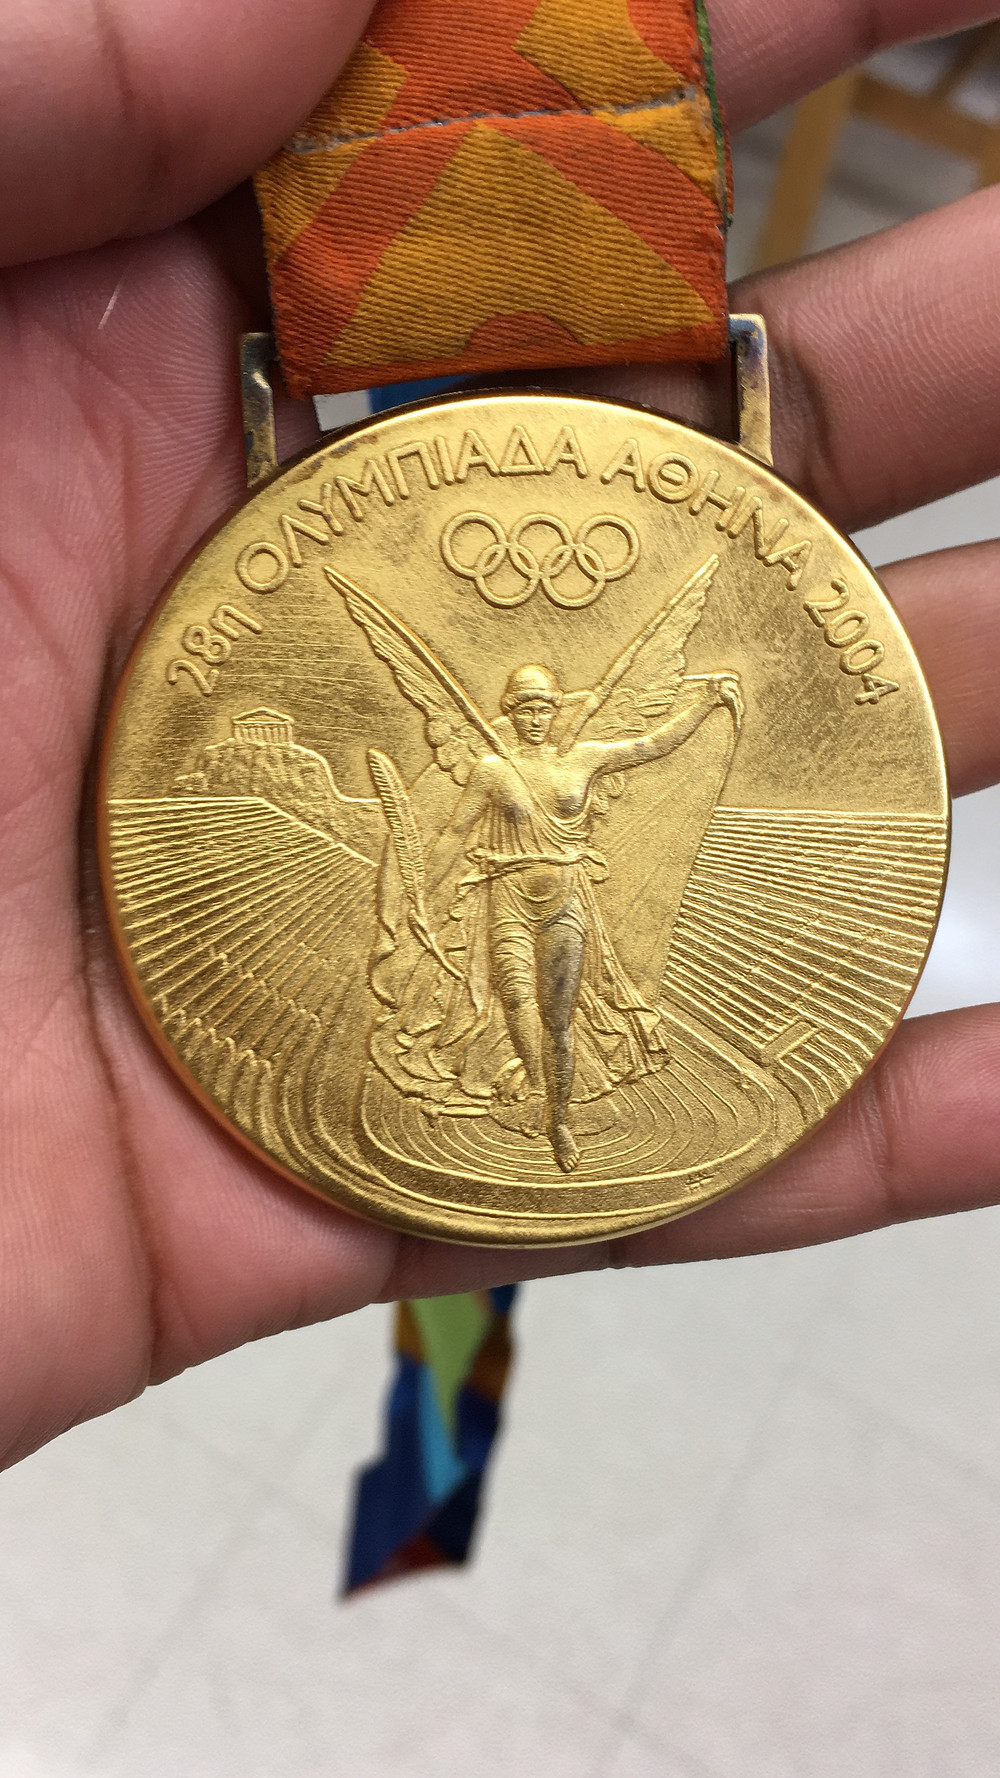 Aleen Bailey's 2004 Athens Olympic Gold Medal